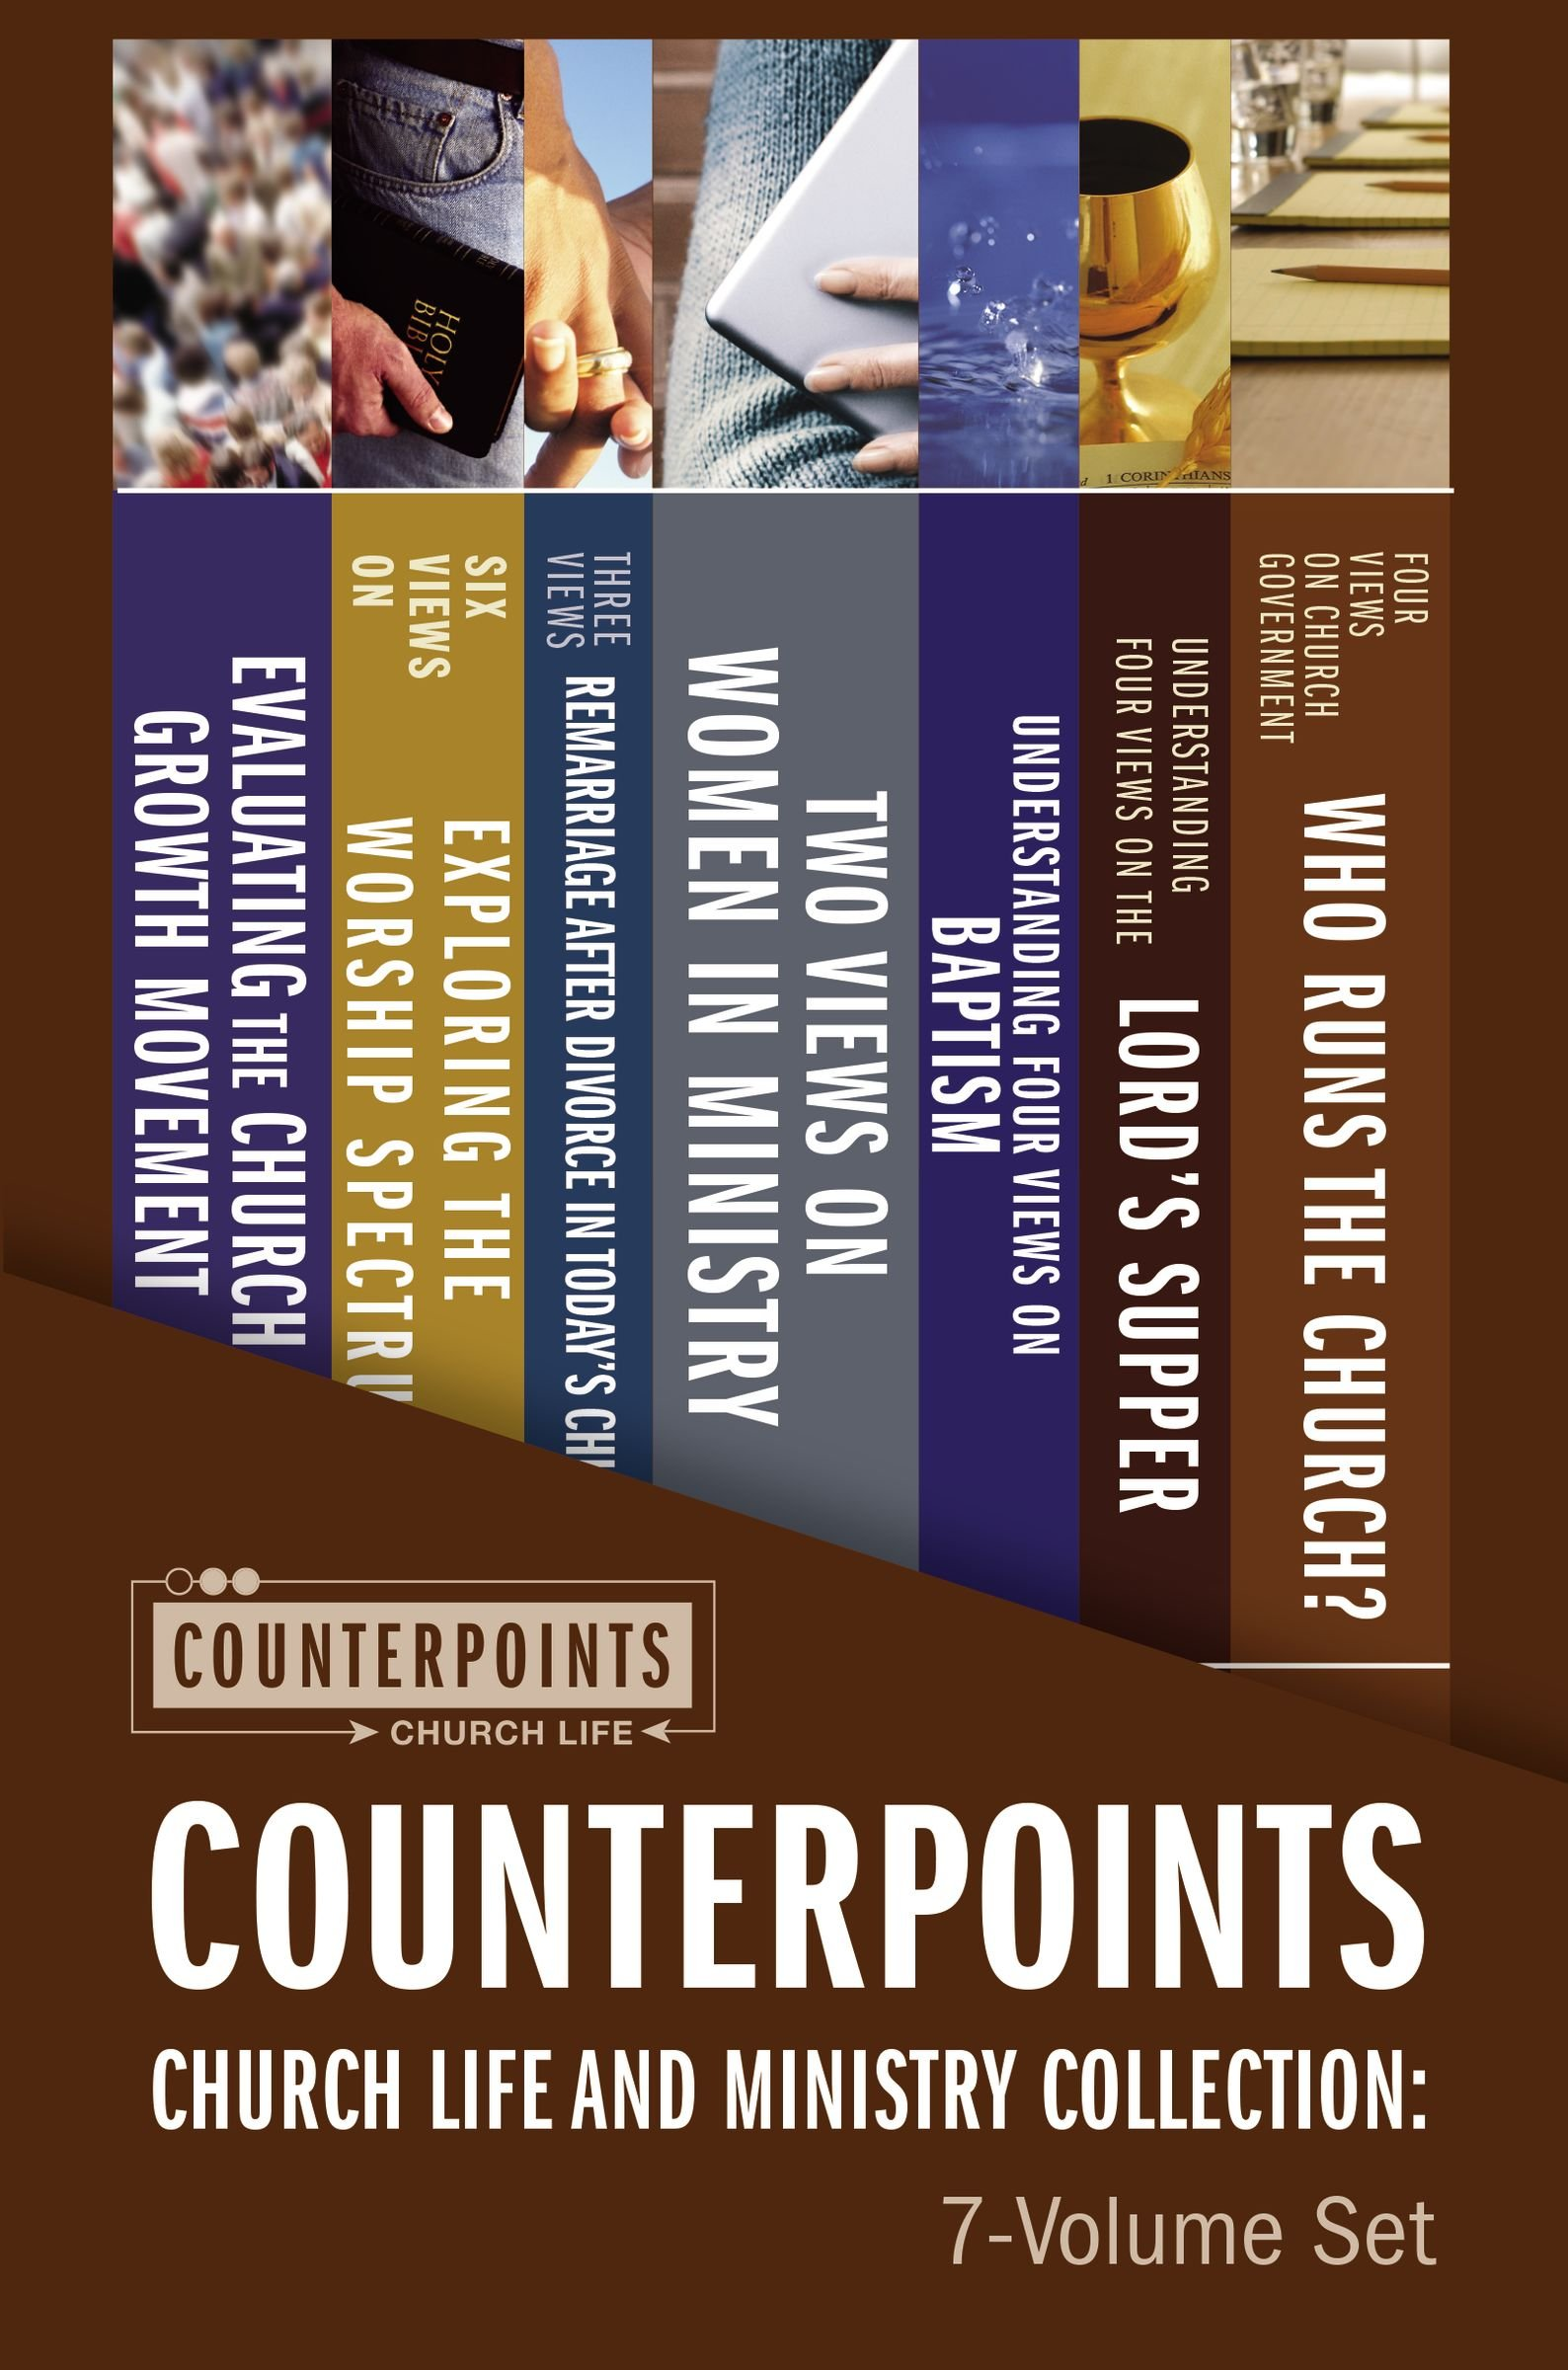 Counterpoints Church Life and Ministry Collection